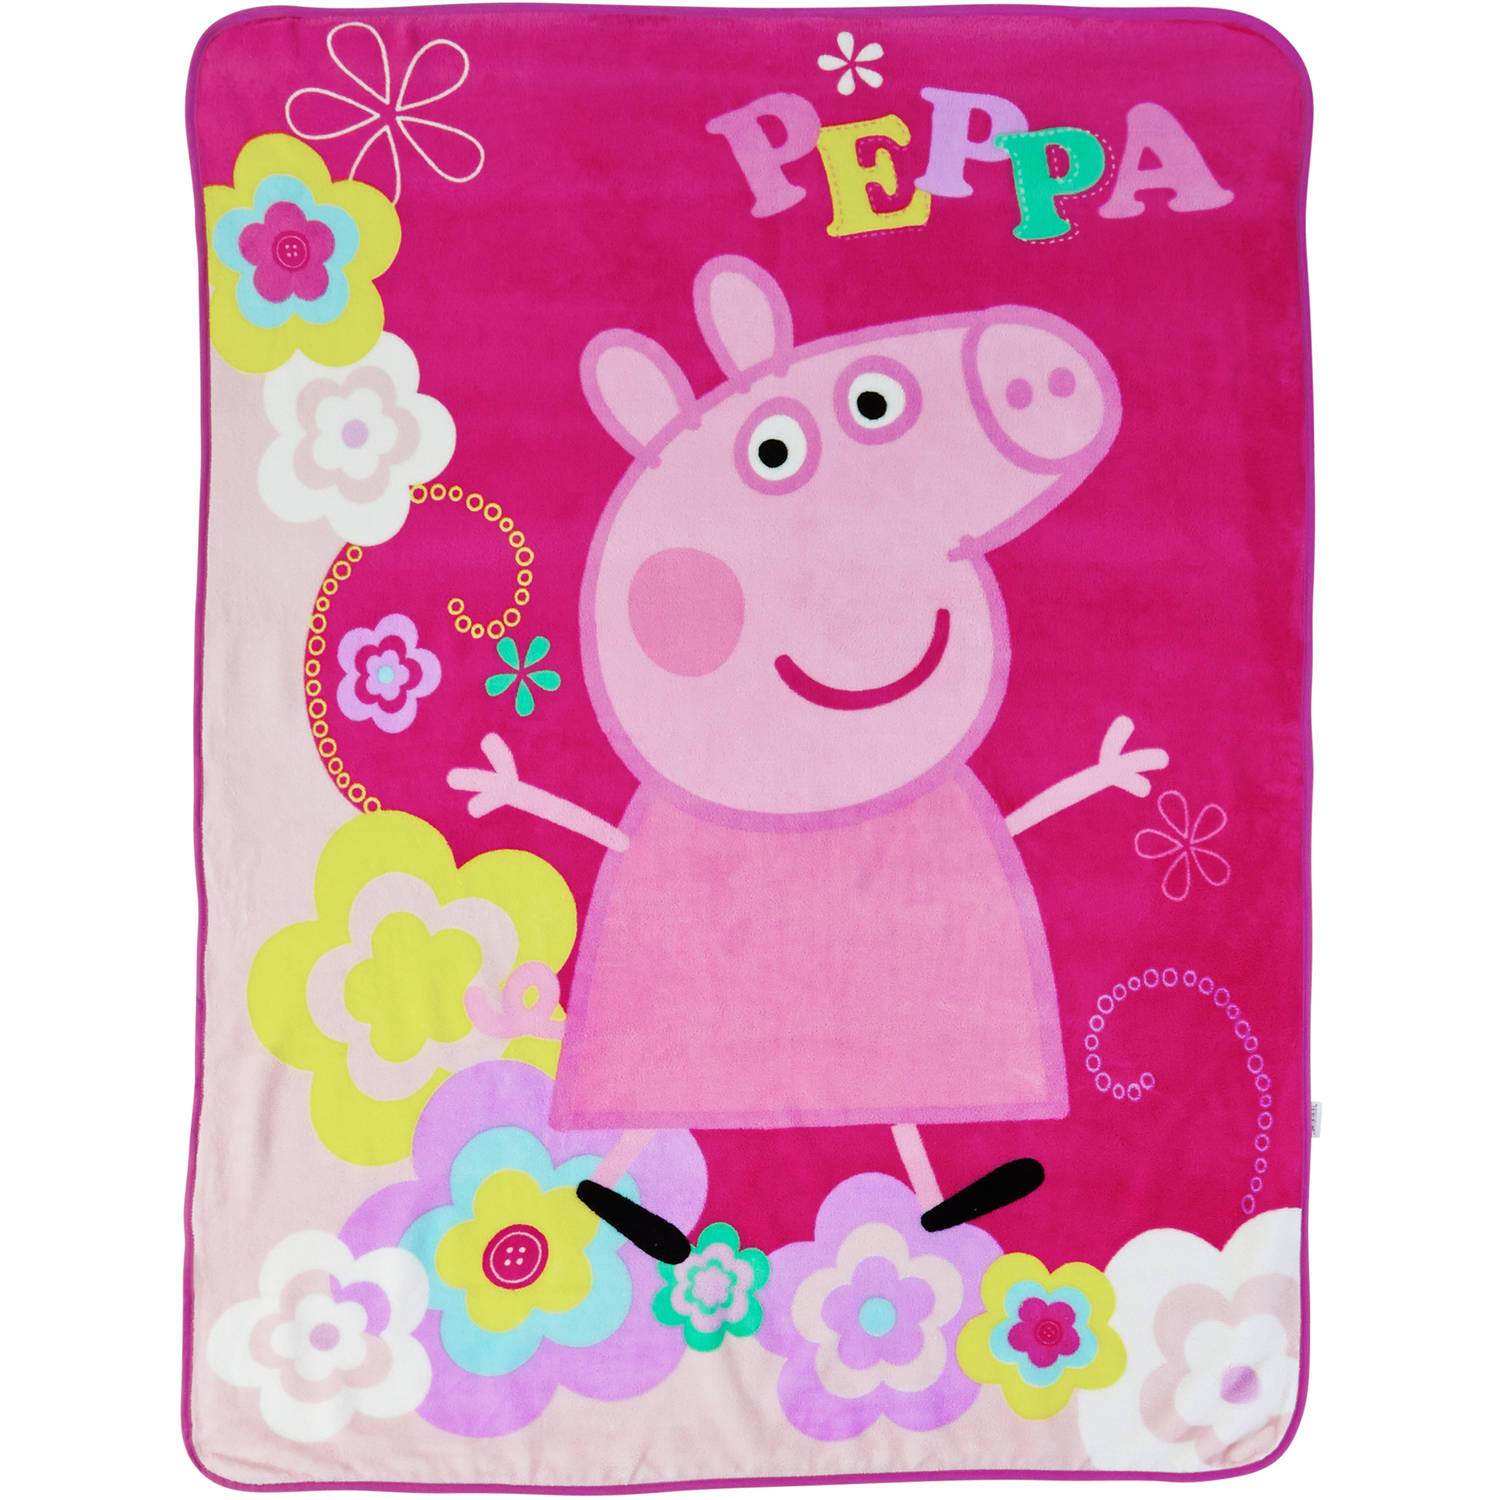 "Peppa Pig Peppas Picnic 46"" x 60"" Kids Plush Throw"